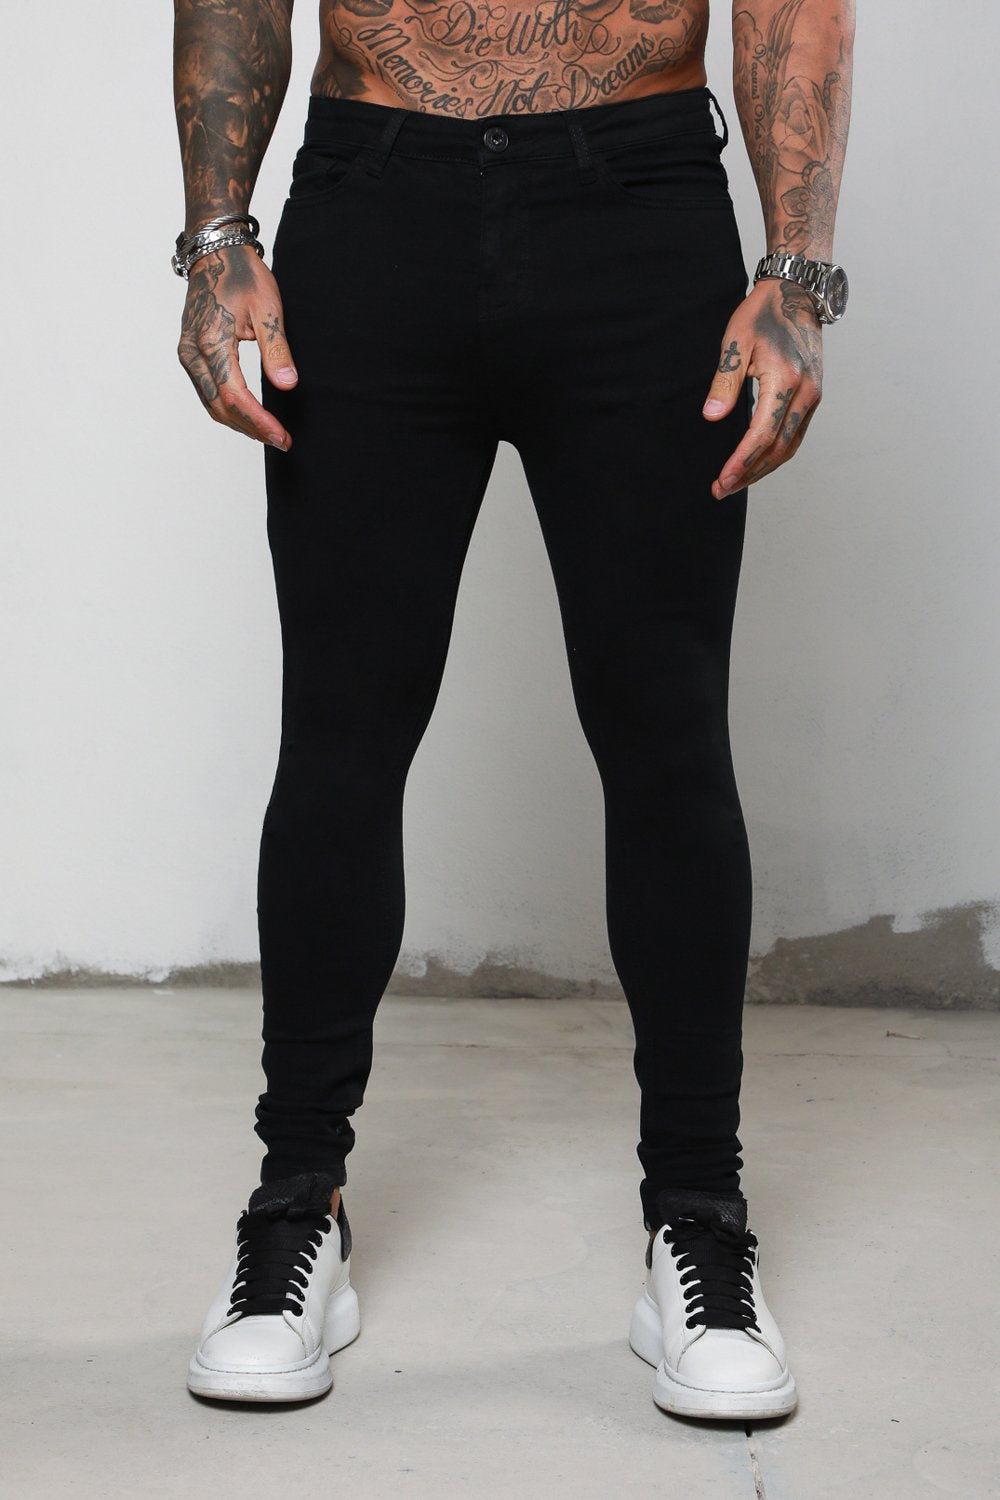 Surreal Non Rip Black Jeans